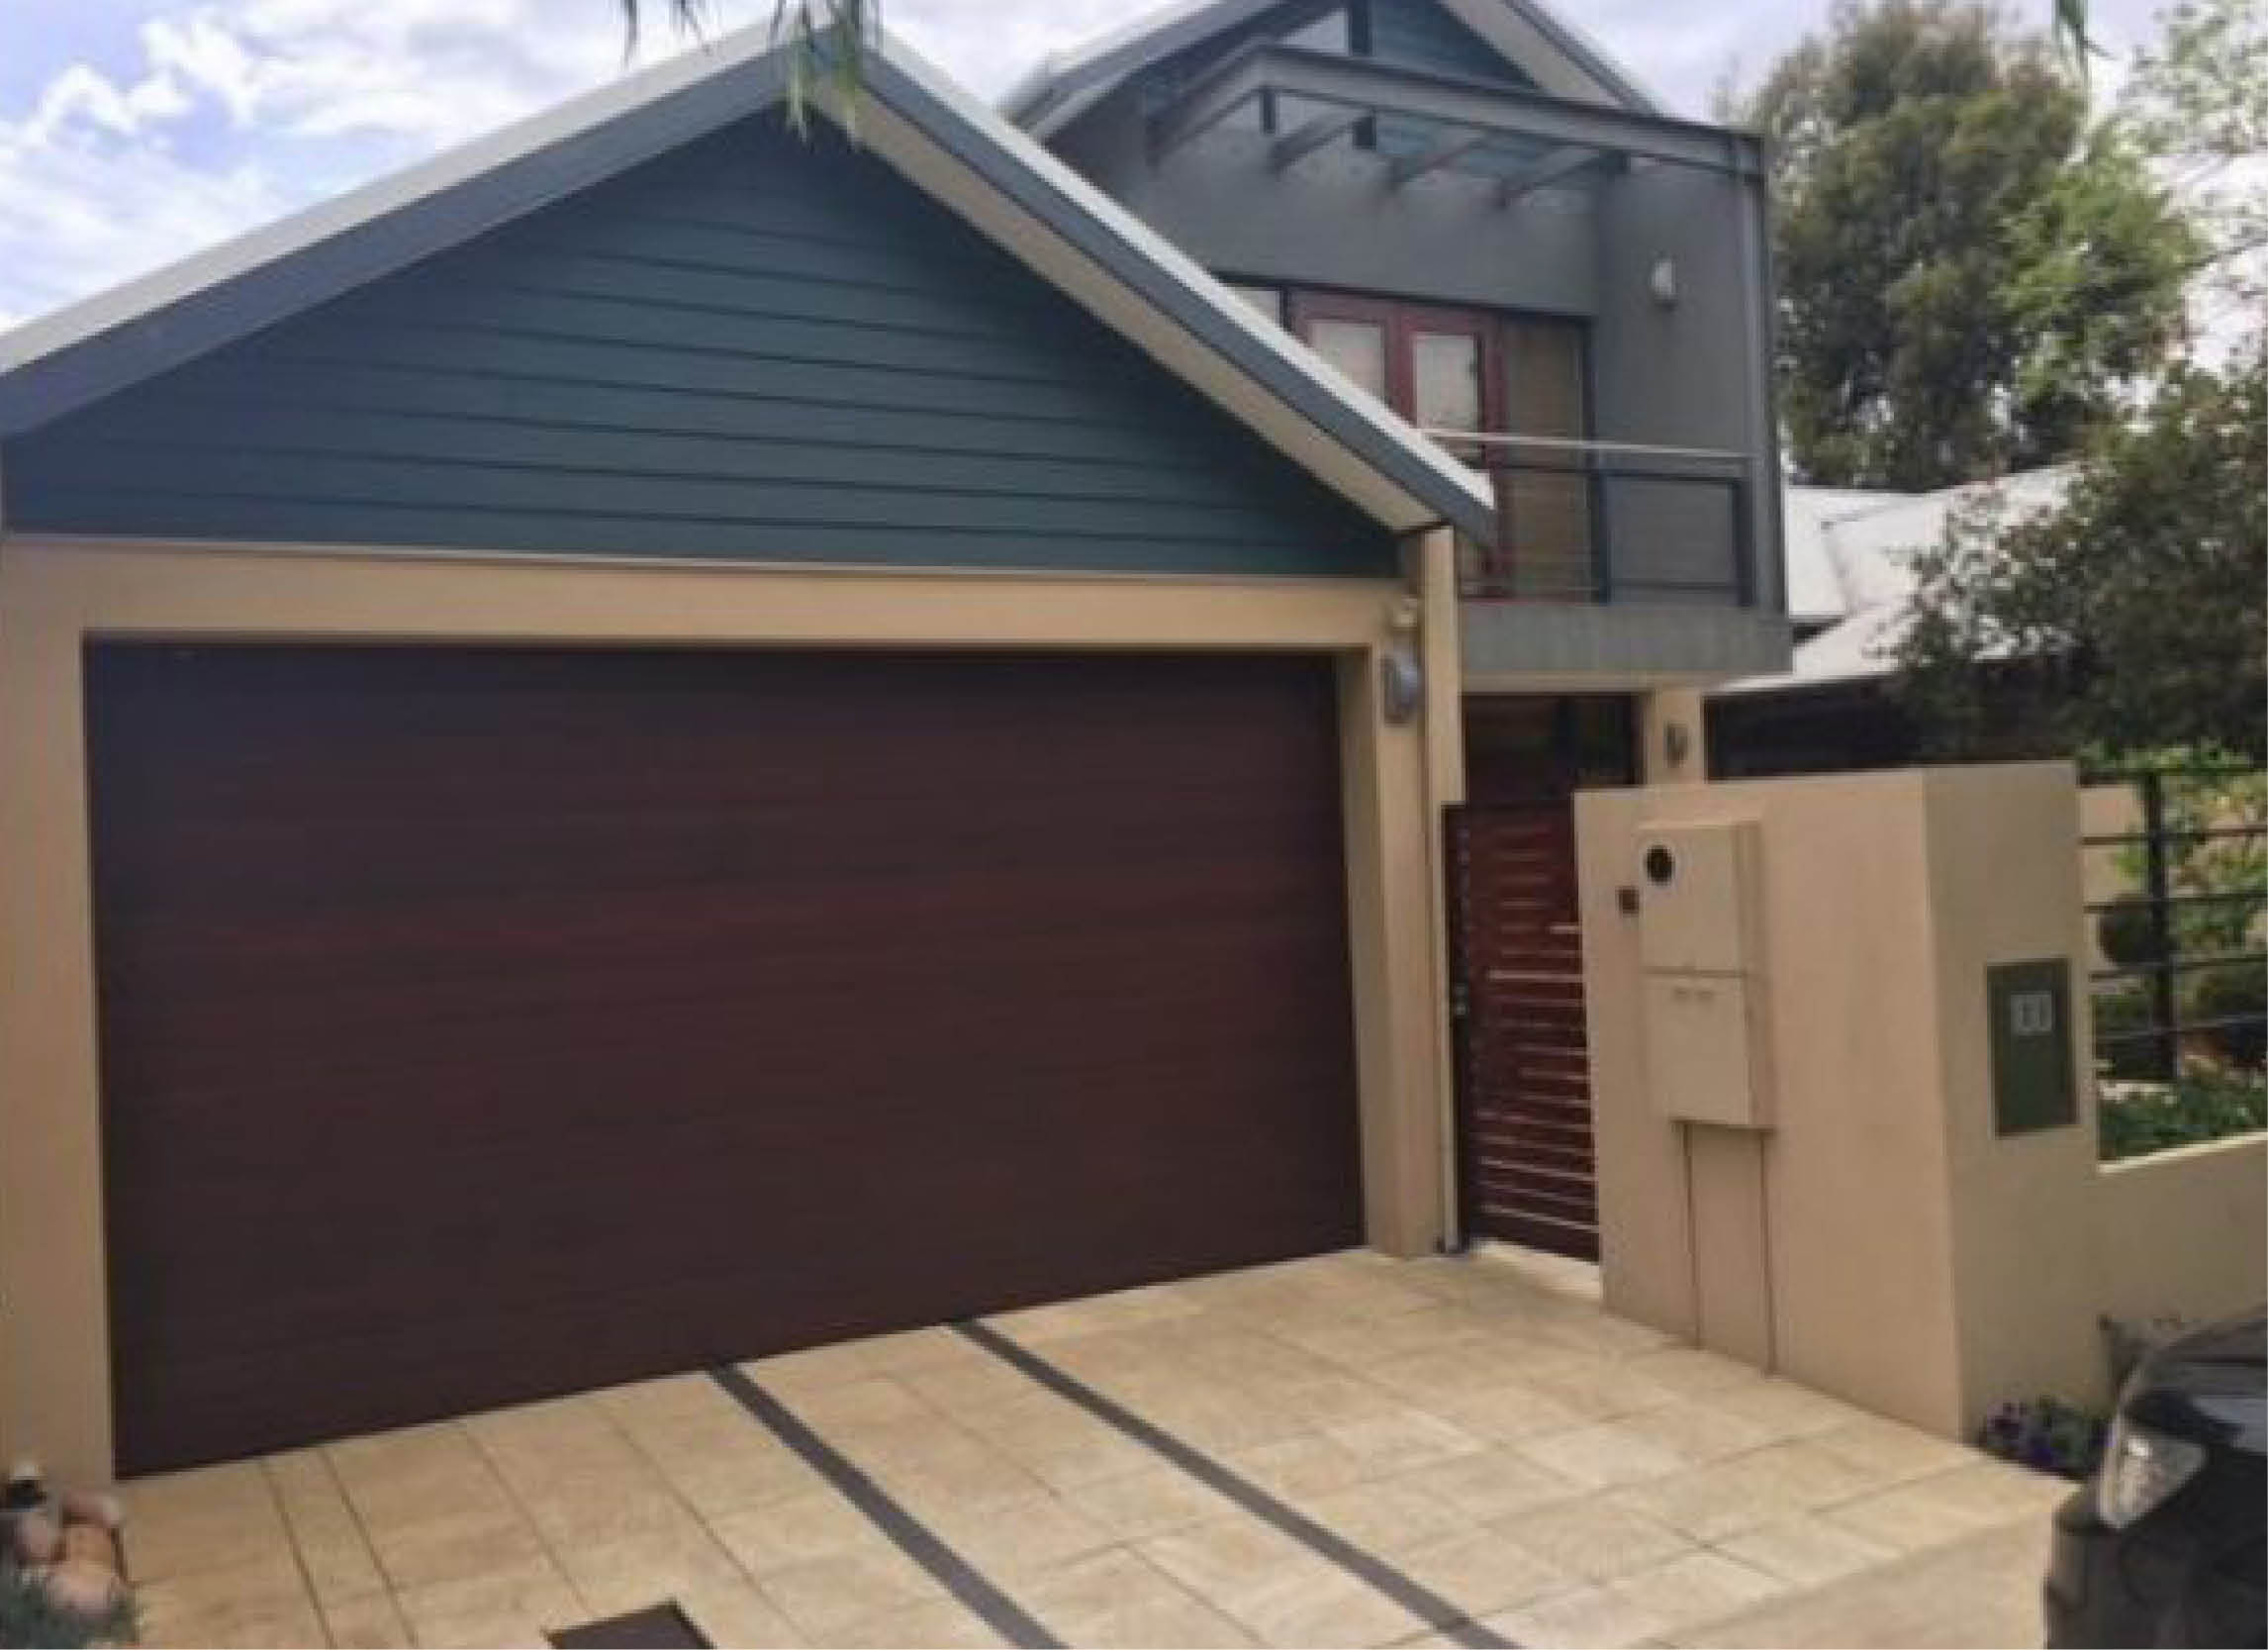 Residential Garage Door Options in Perth